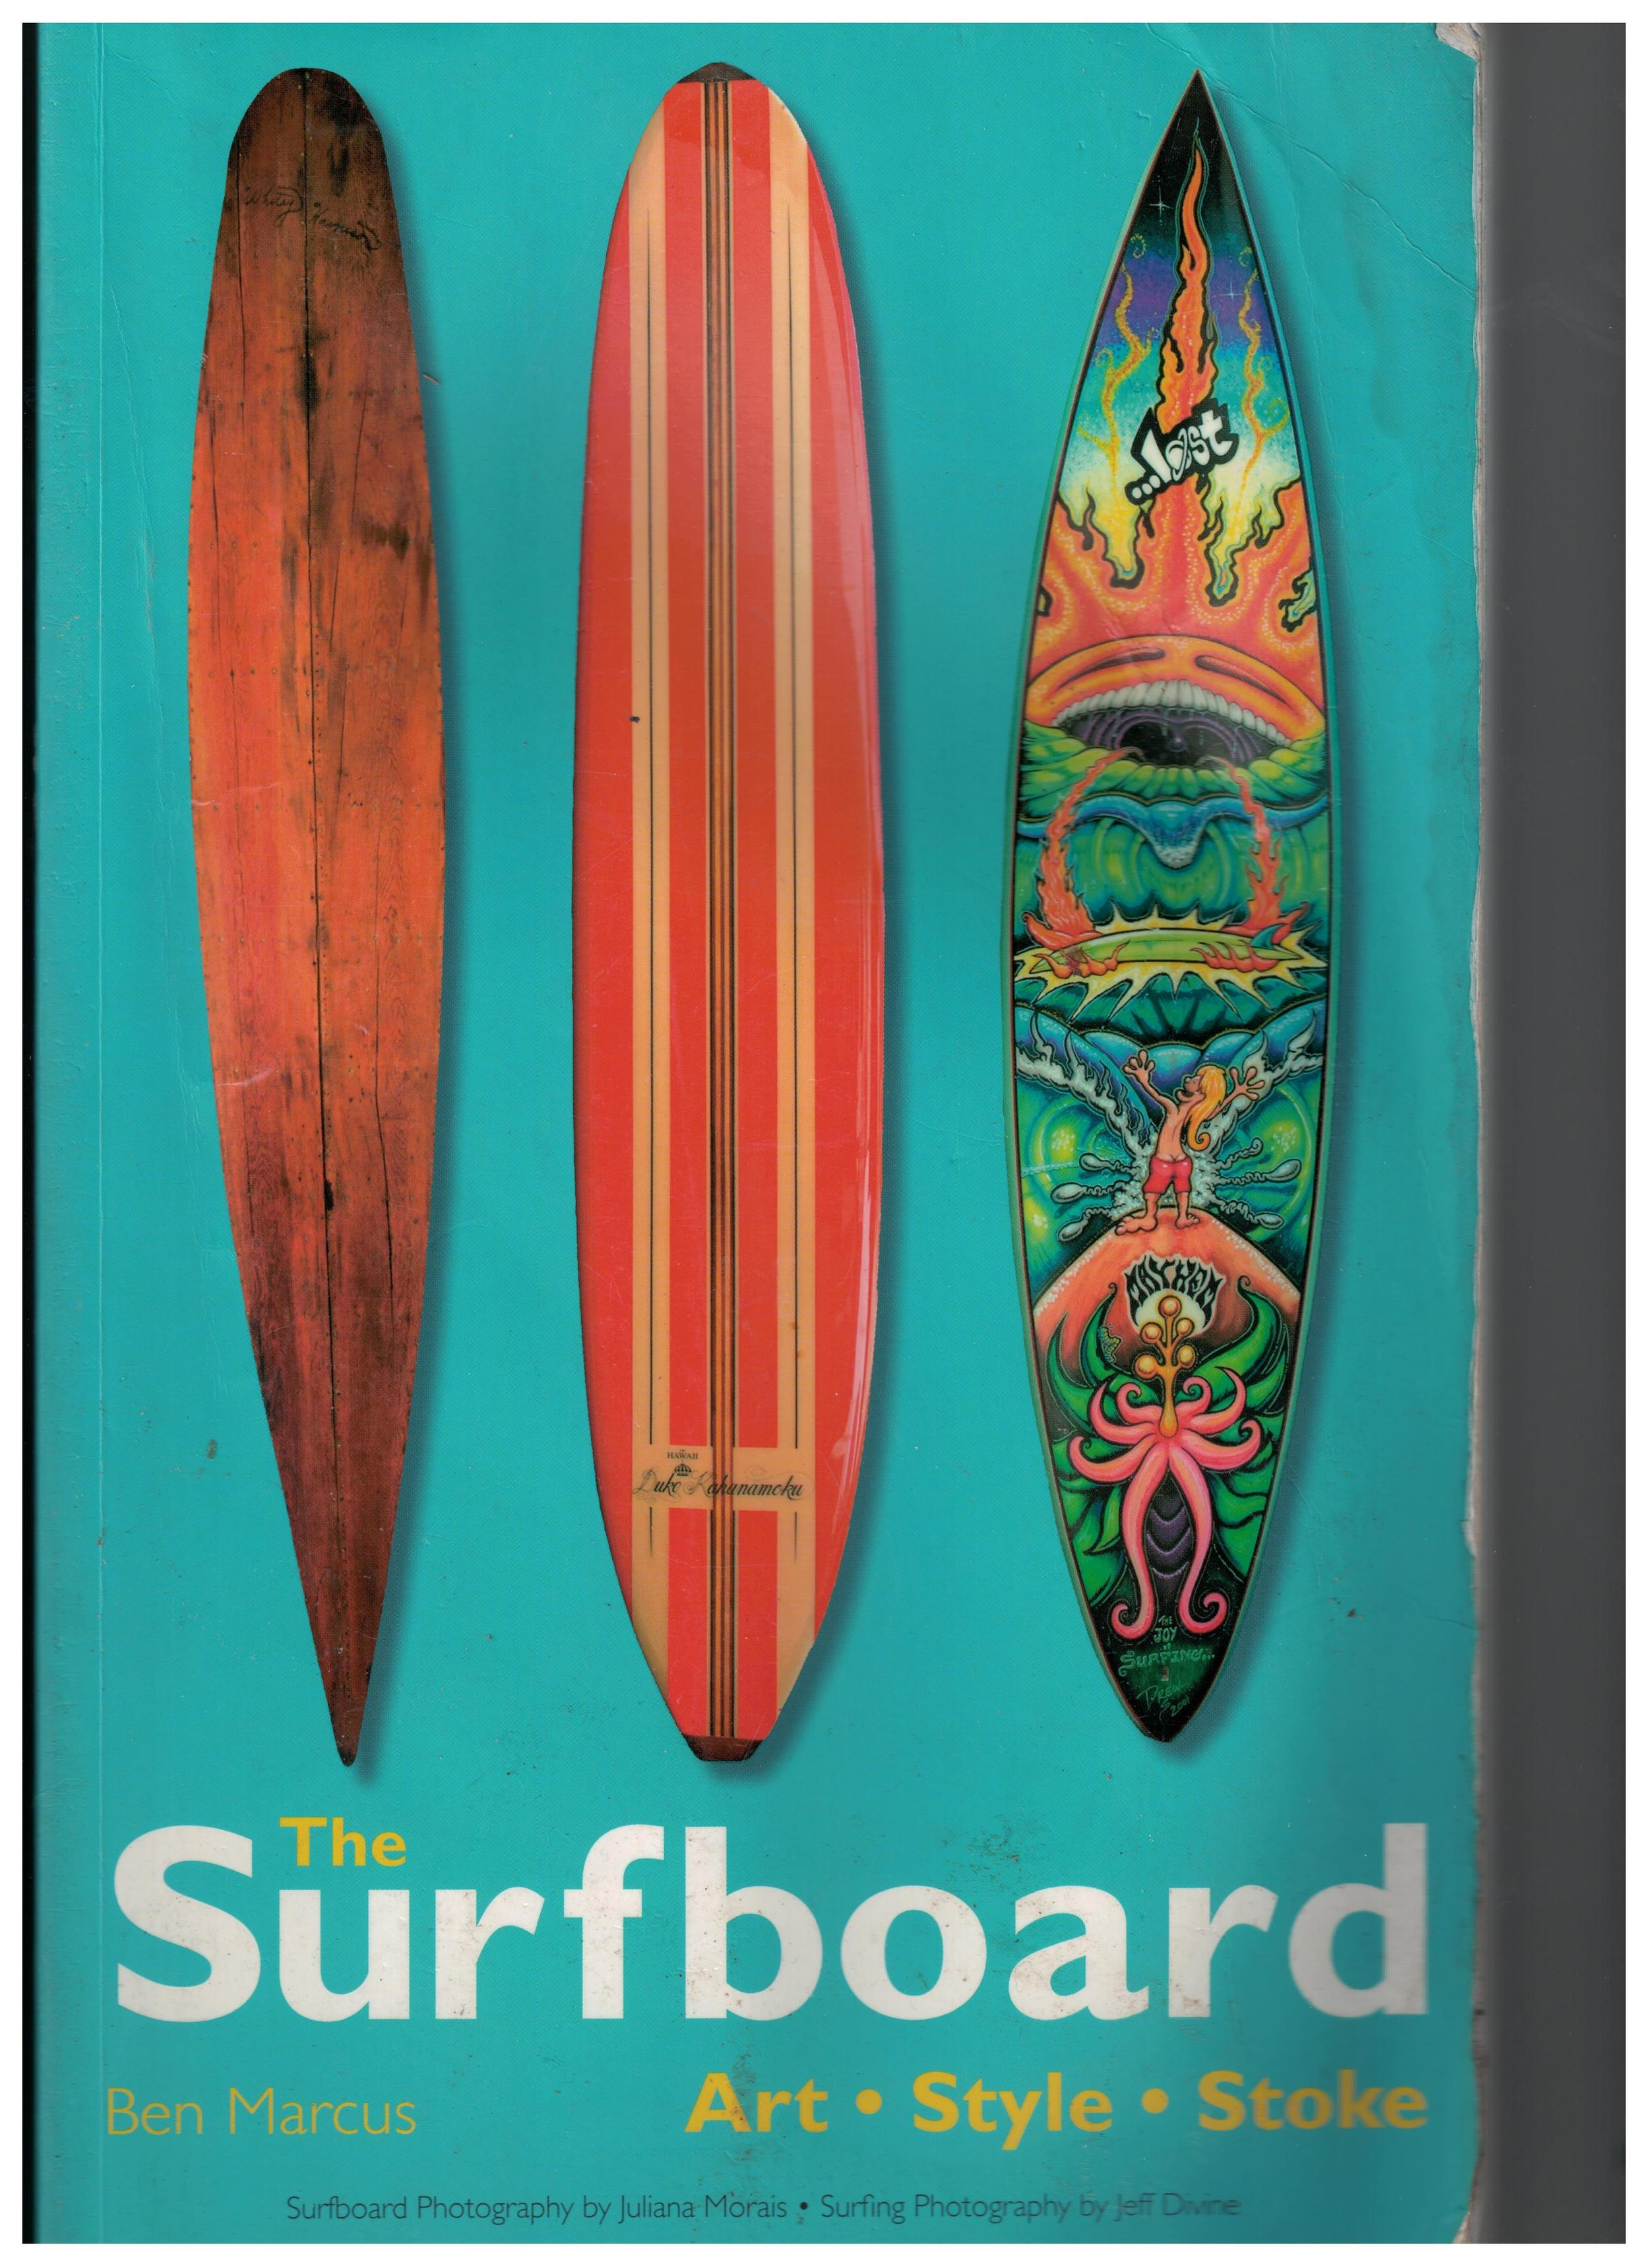 Paperback version of The Surfboard: Art, Style, Stoke (2007)